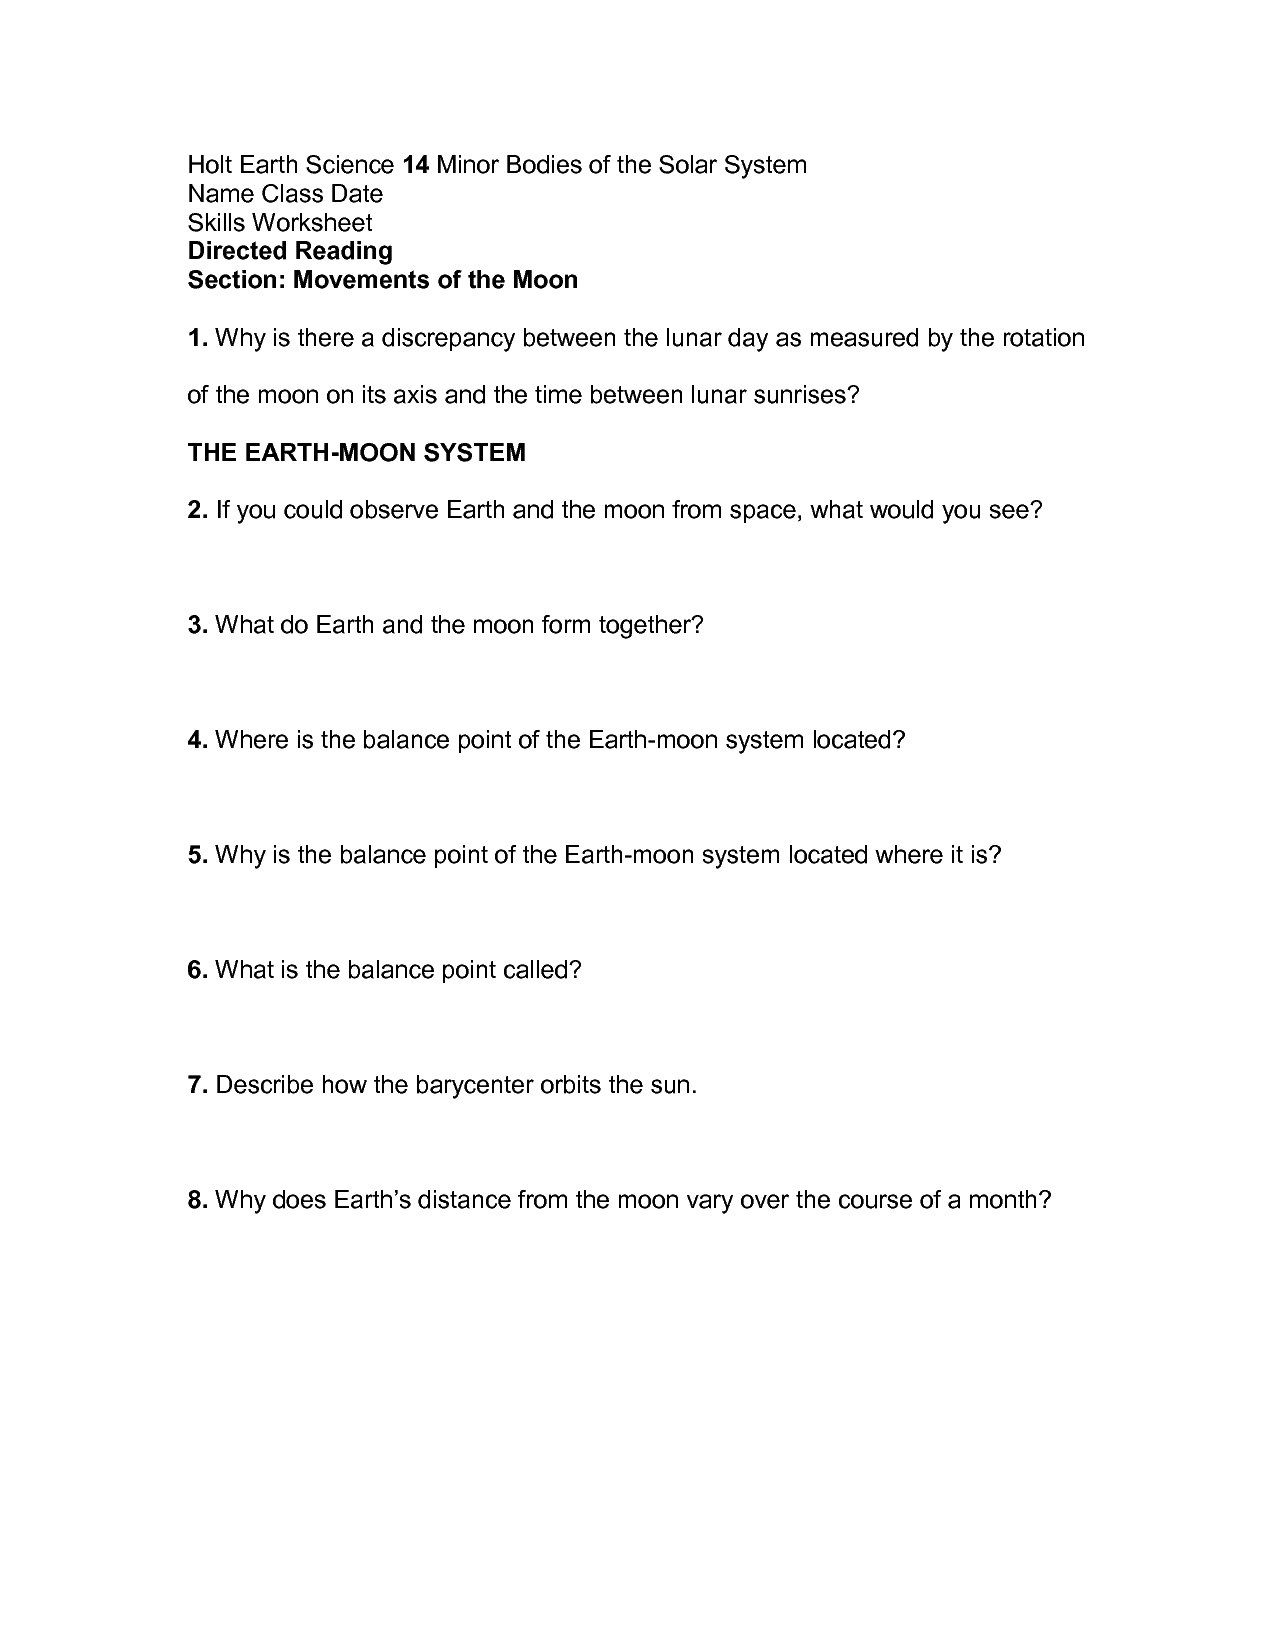 34 Skills Worksheet Directed Reading A Answer Key